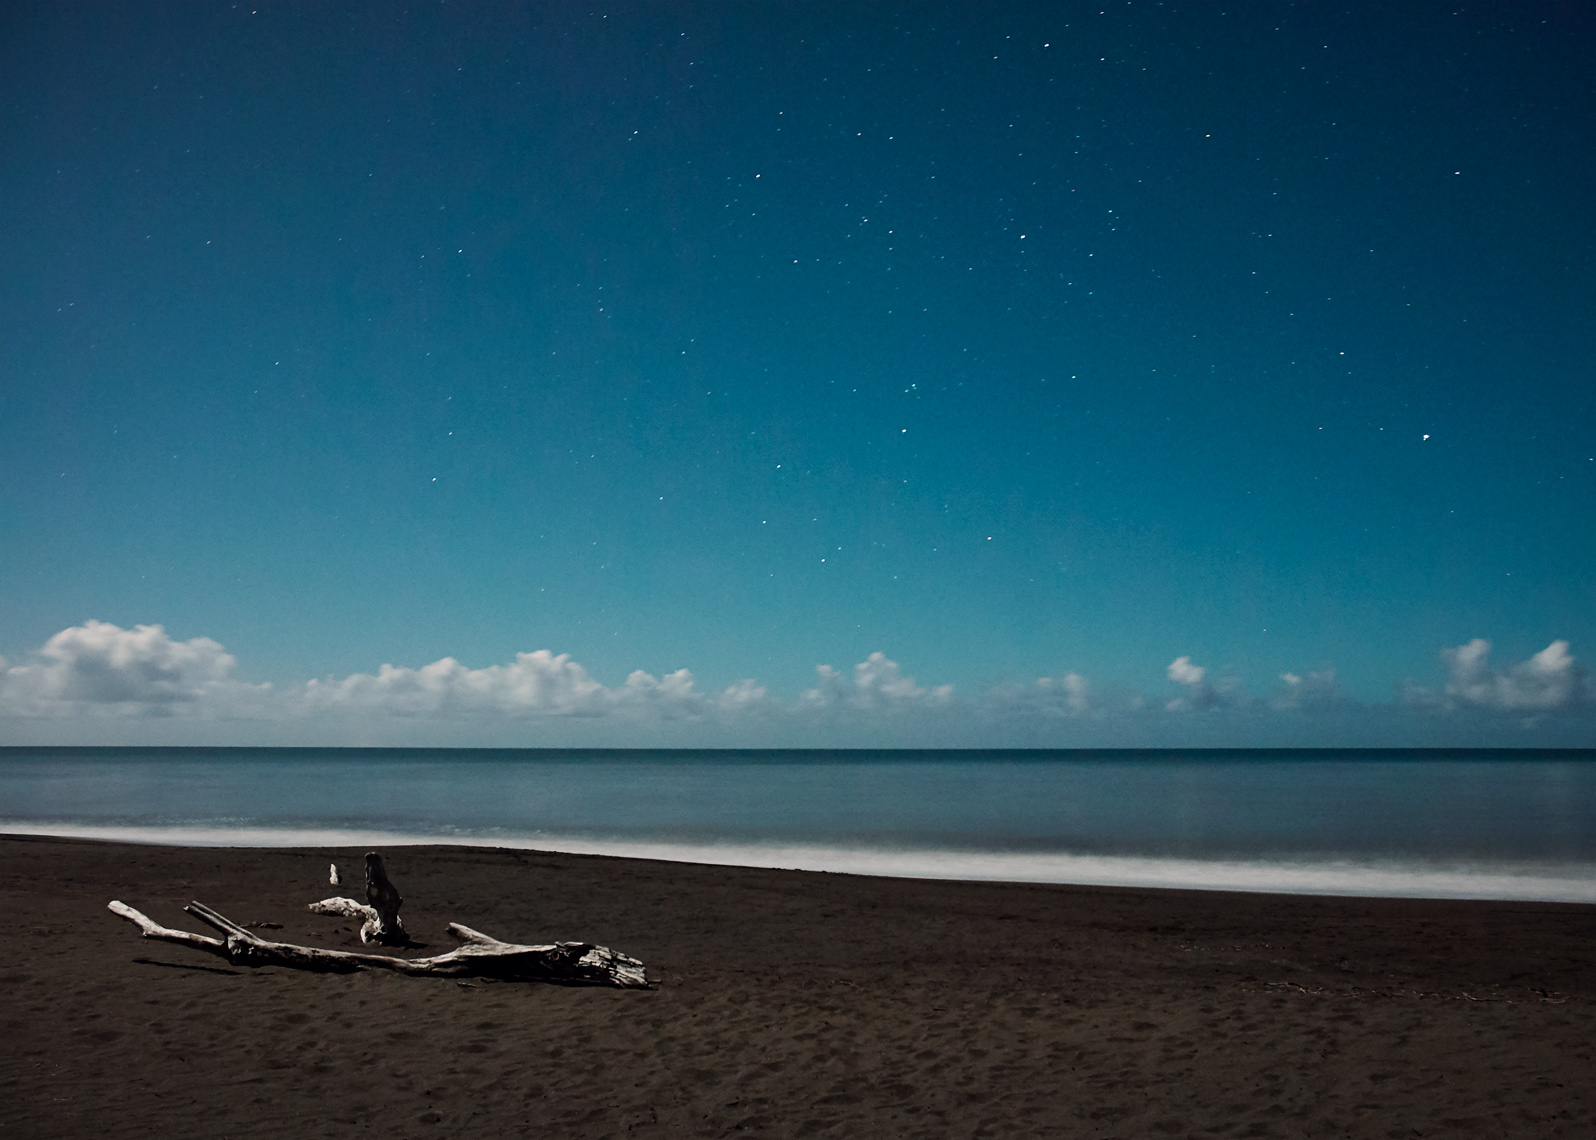 The stars are out in this long exposure shot of a PNW beach